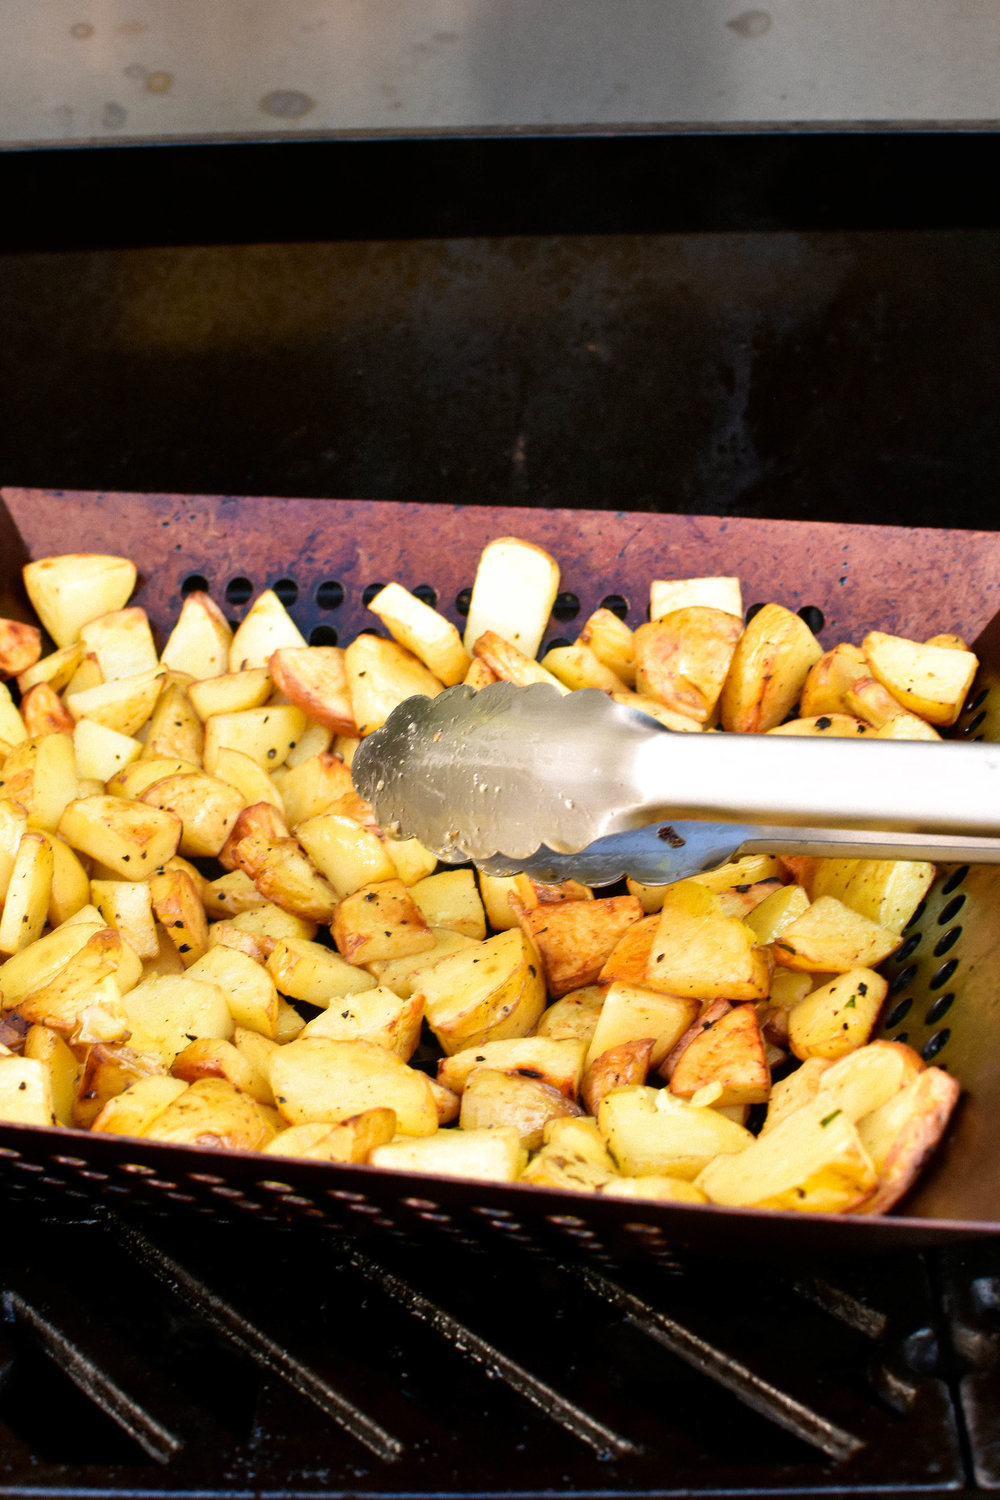 Grilled Lemon Potatoes with Lemon & Parsley #makemary